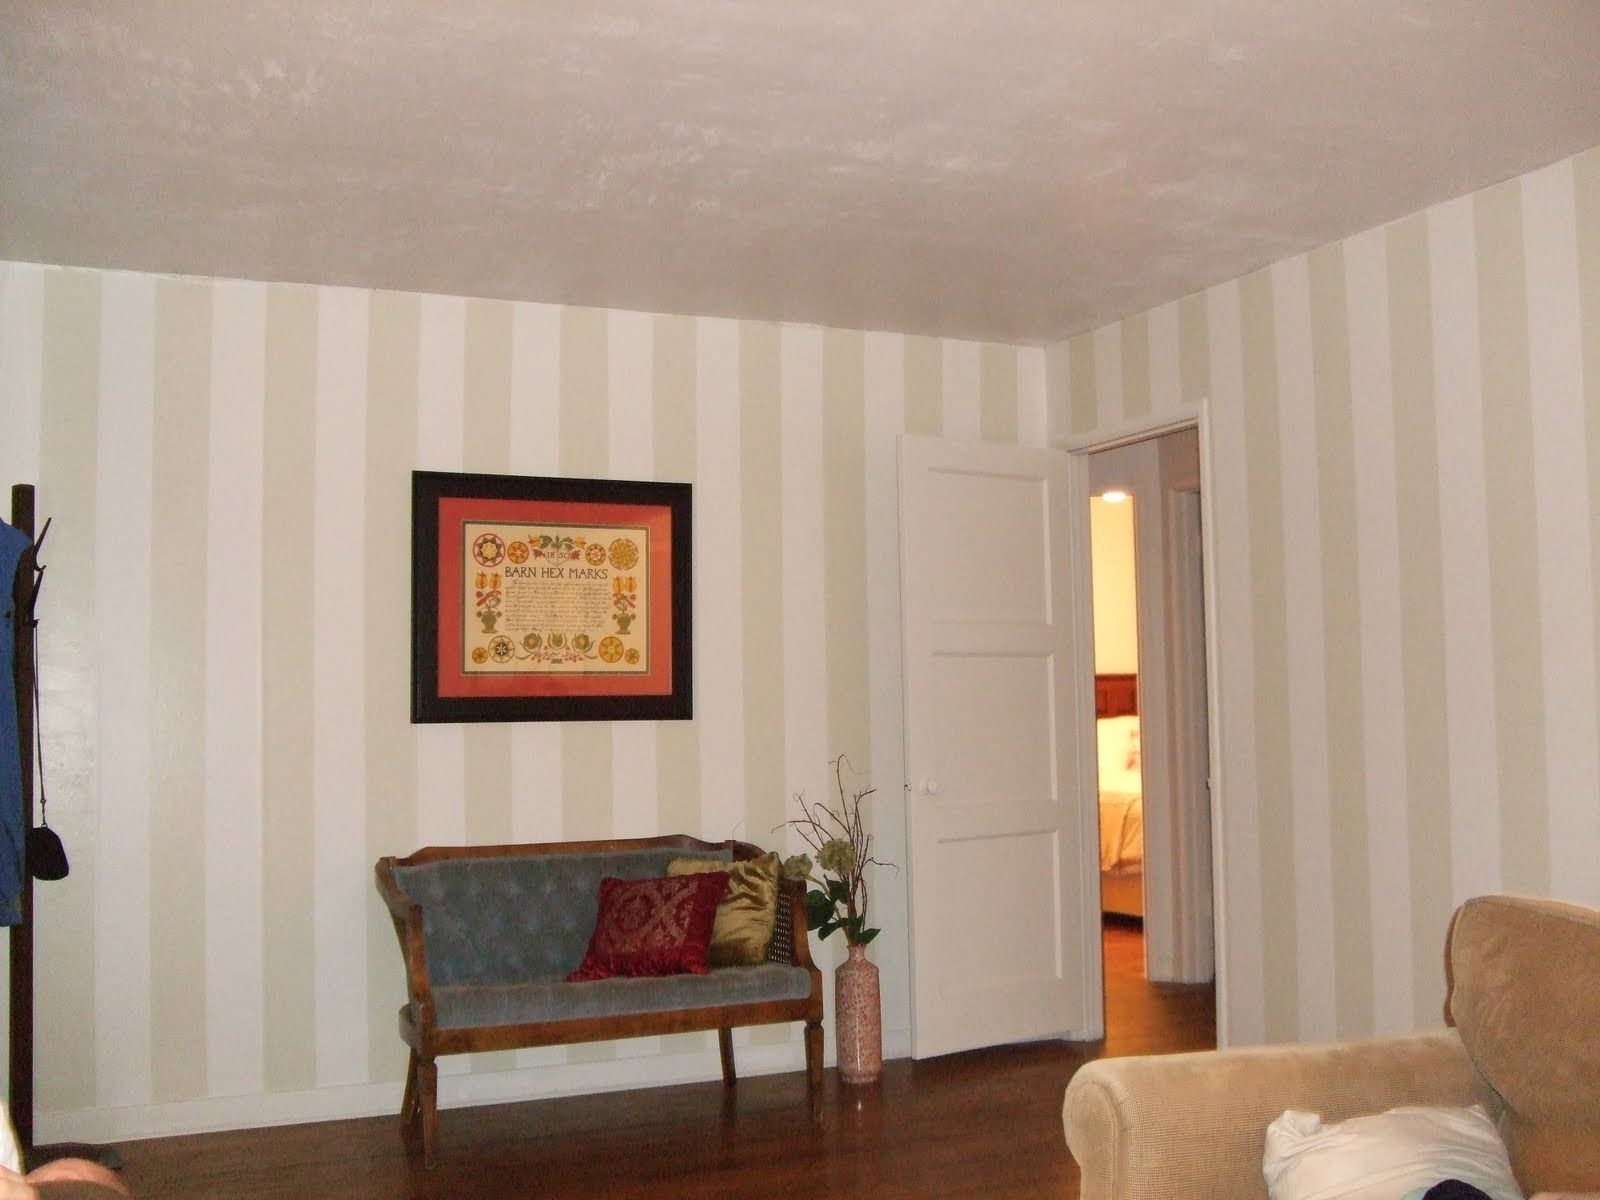 Best Interior Paint Brand Modern Grey Striped Wall Color Designs .